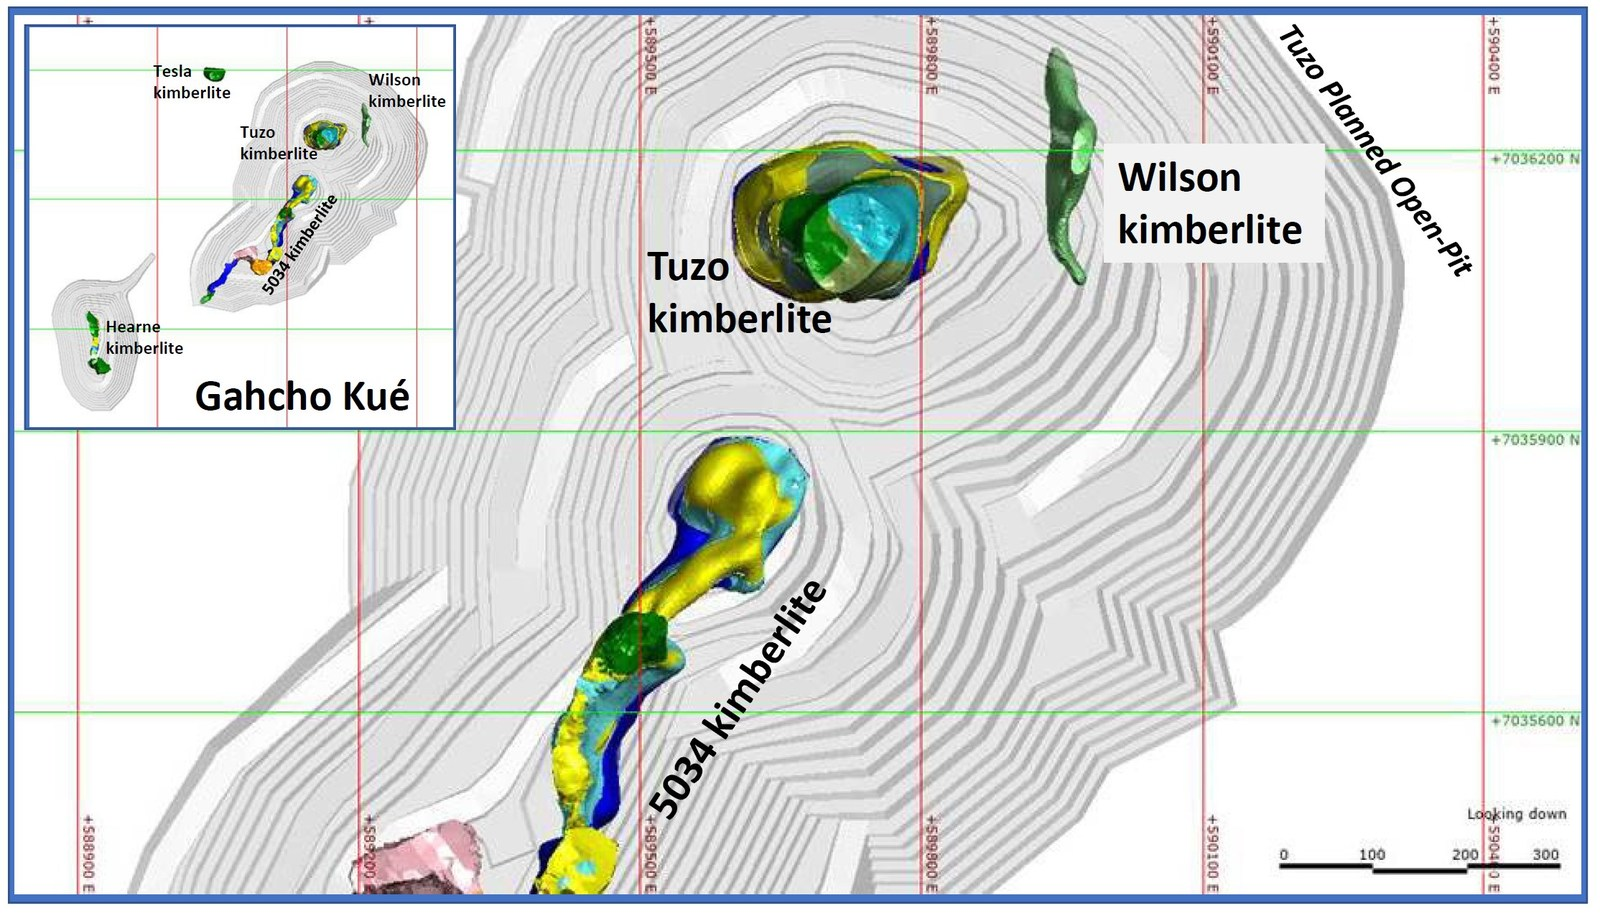 Plan view of the Wilson kimberlite. Inset shows the location relative to other kimberlites in the Gahcho Kué JV area. The planned open-pit mine pit shells are shown in pale gray.